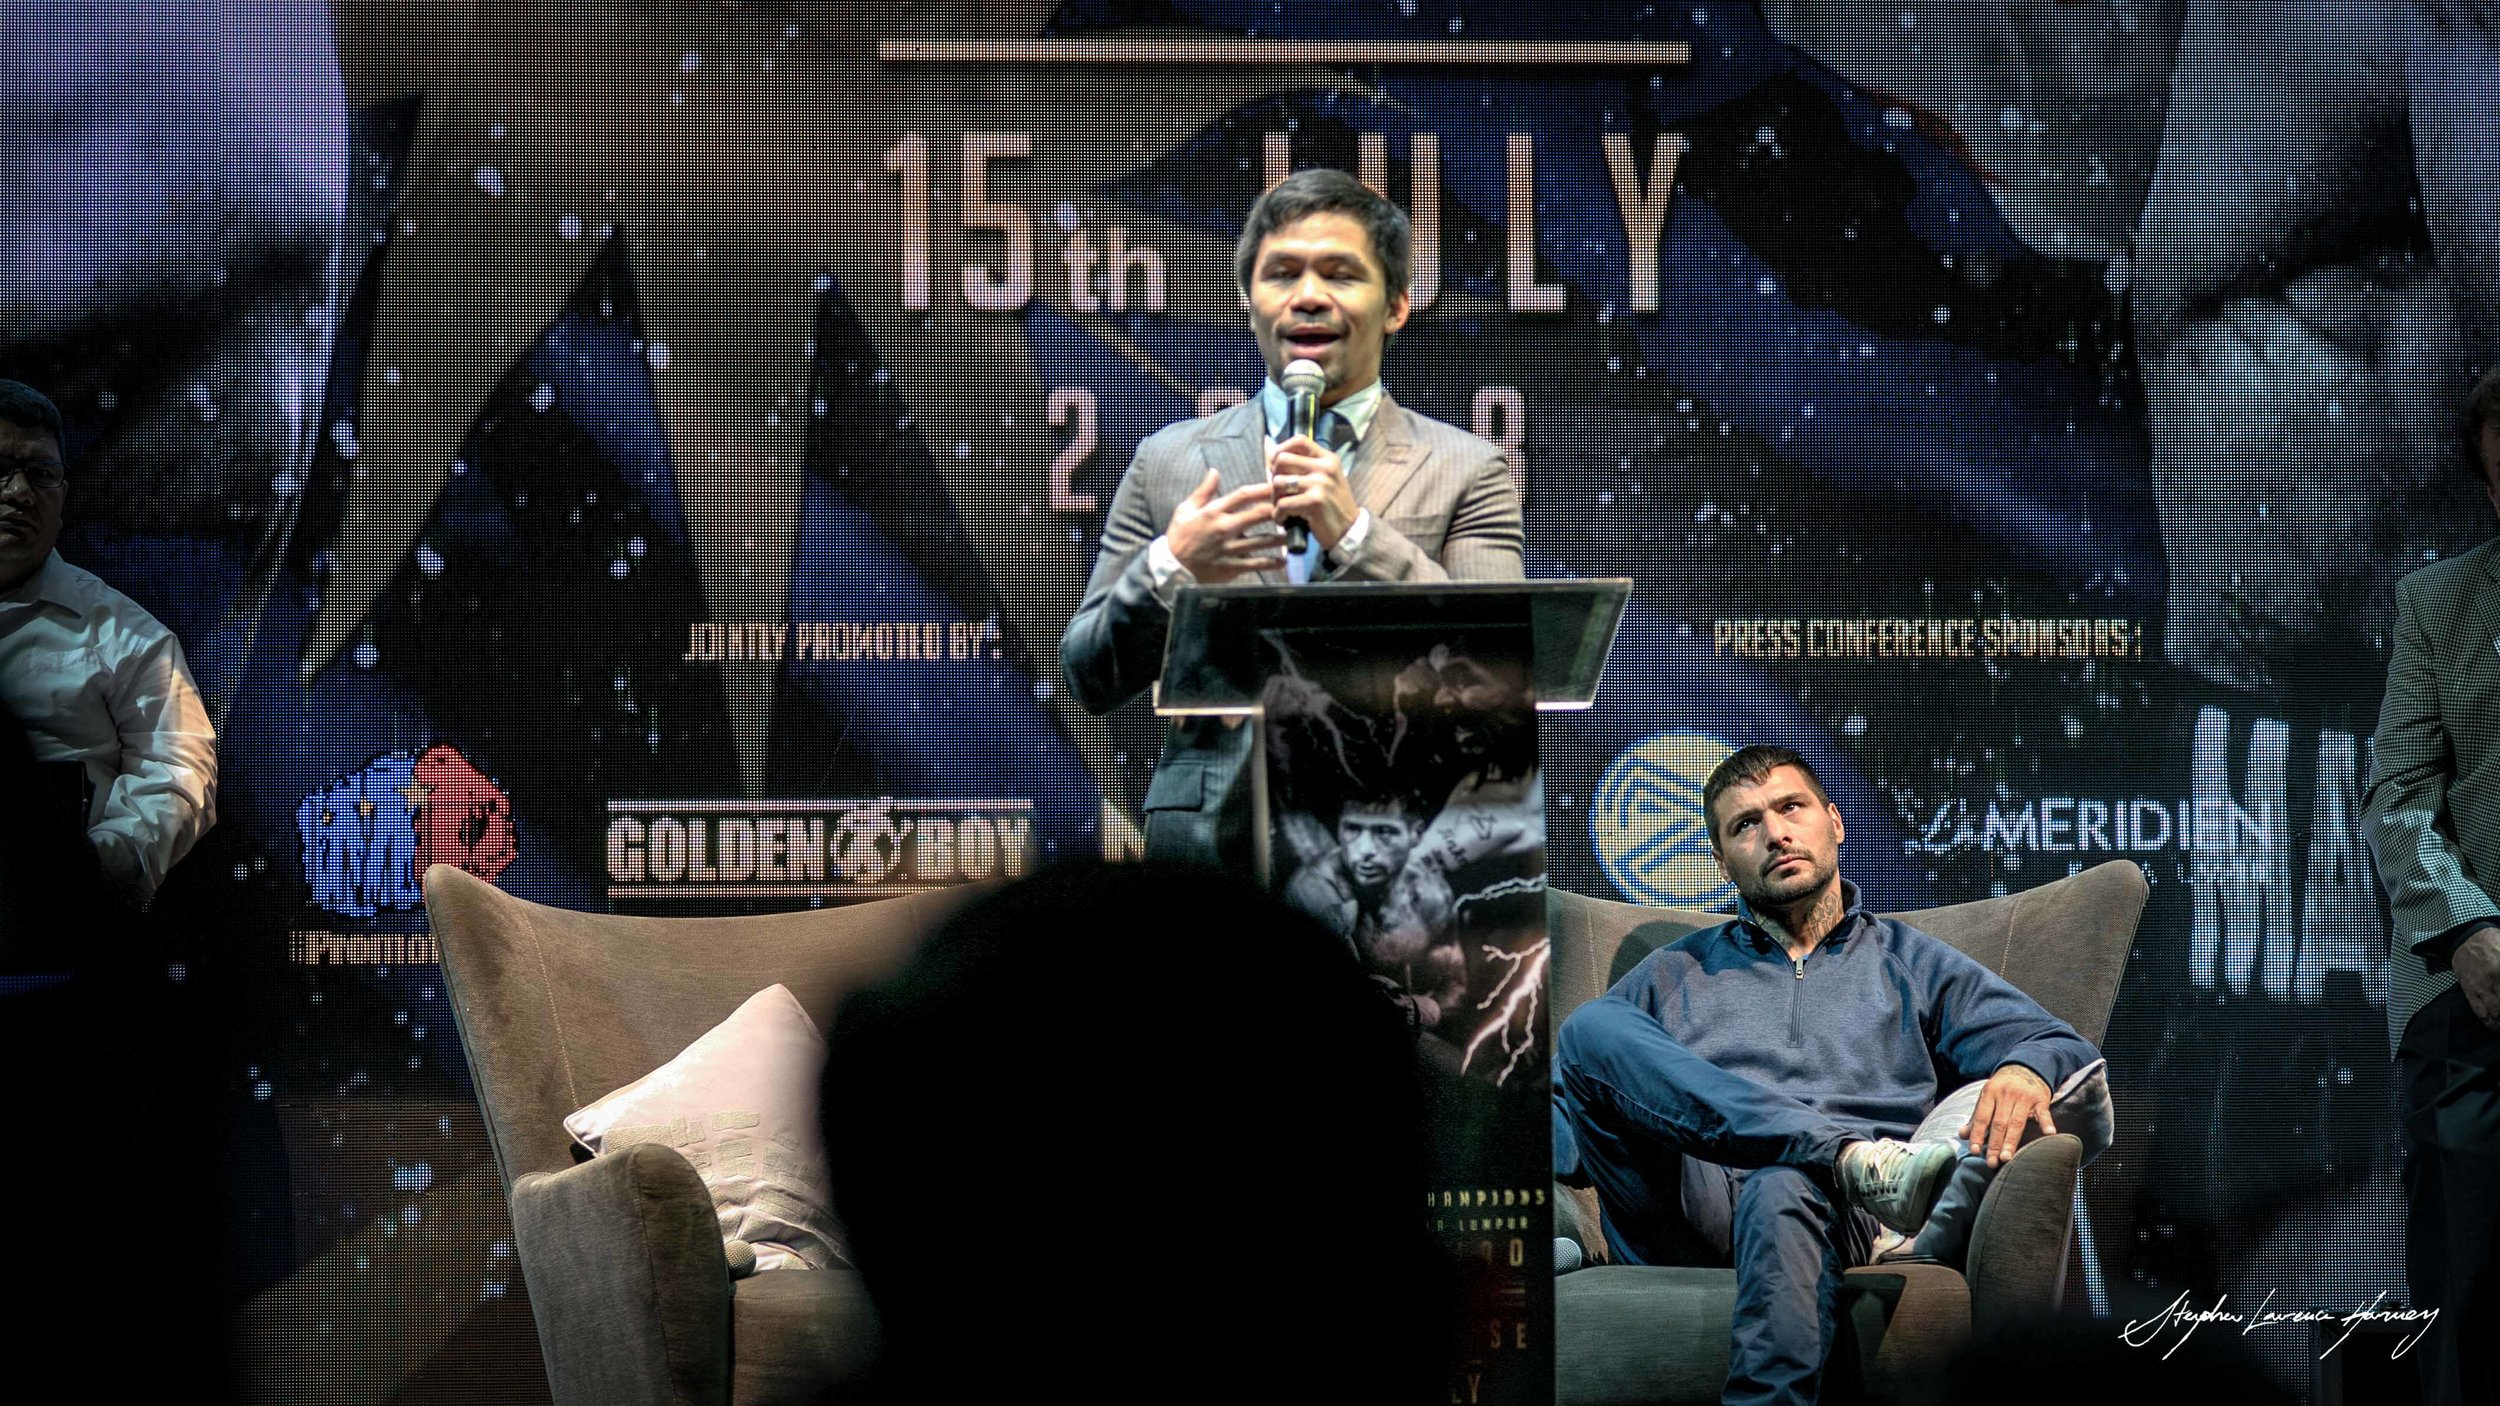 Lucas seems to have a keen eye on Manny here : a moment from the press con - this should be an exciting fight to watch - They are both warriors in the ring